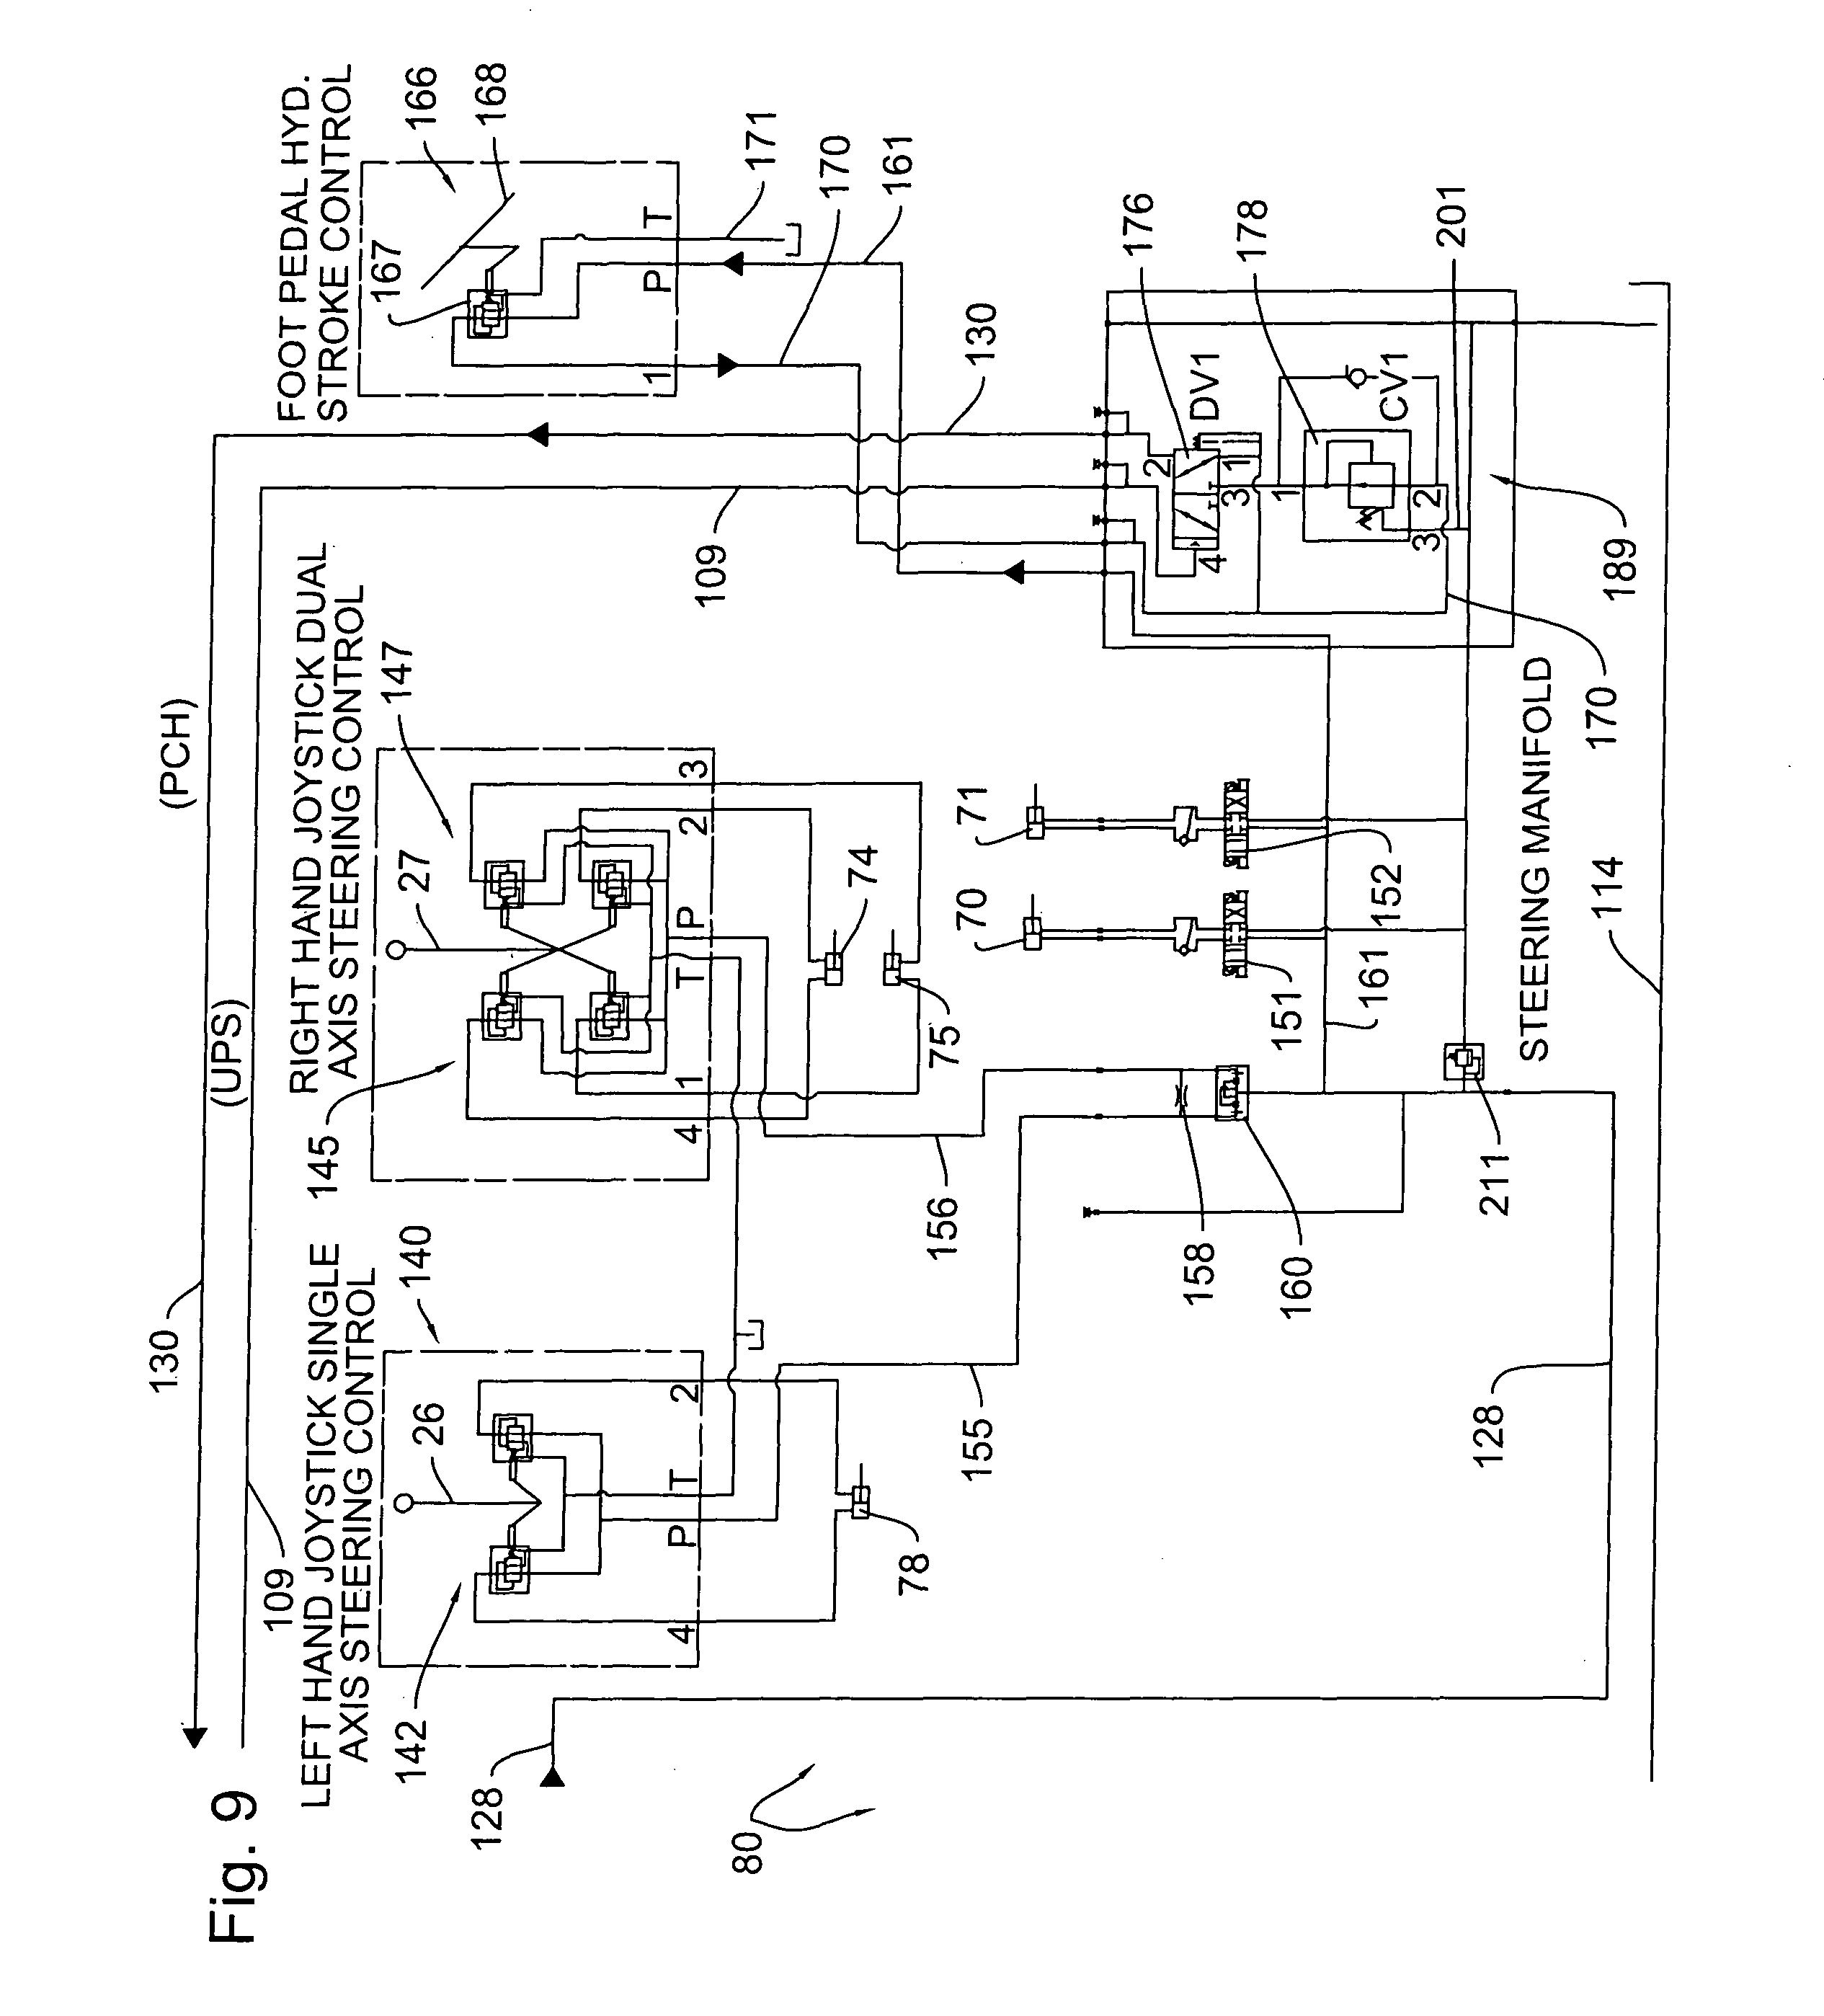 Sauer Danfoss Joystick Wiring Diagram 37 Images Us08360680 20130129 D00009 Patent Us8360680 Hydraulic Riding Trowels With Automatic Load